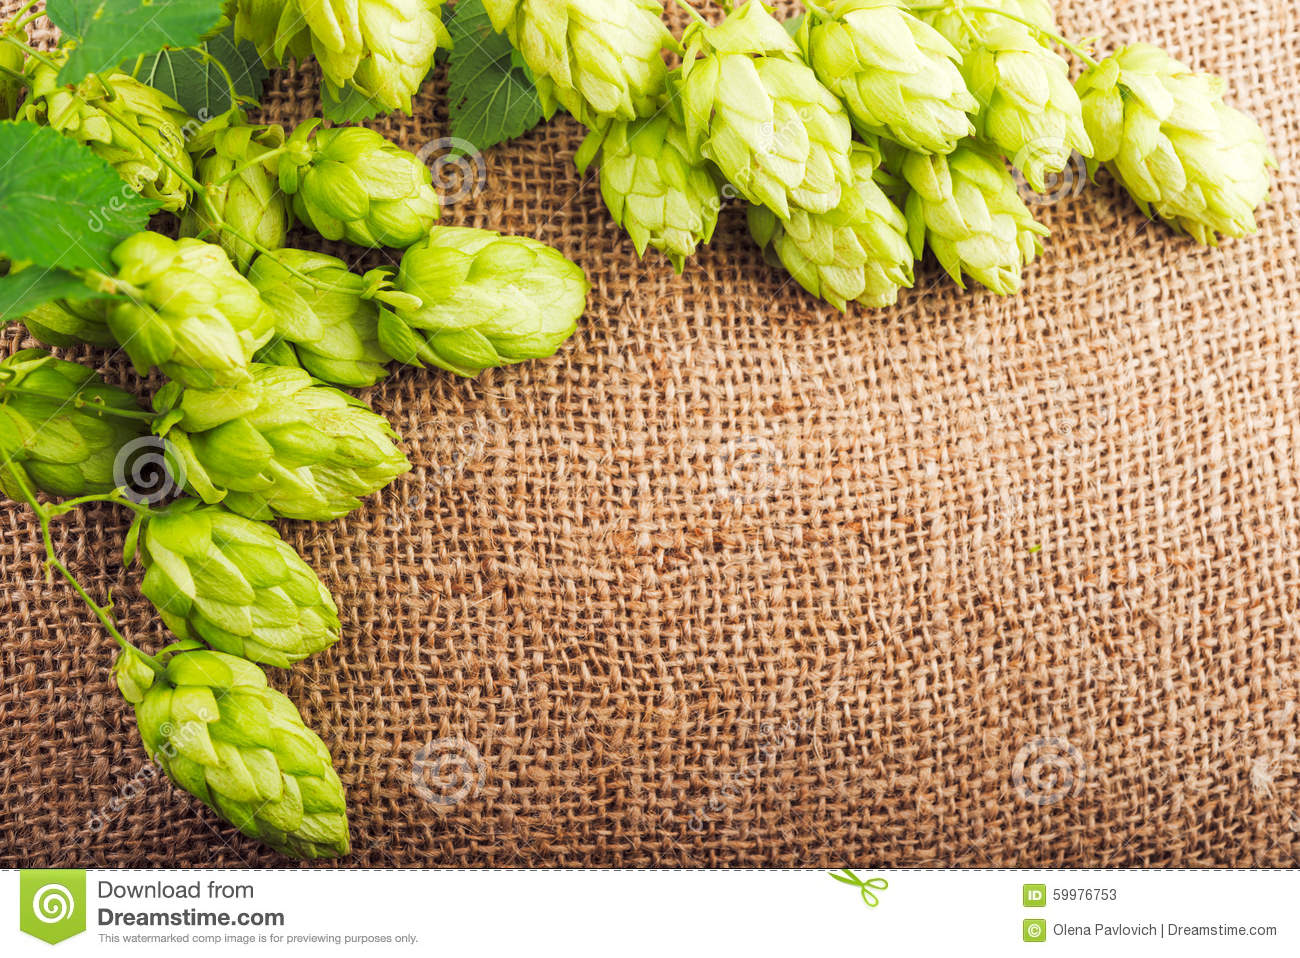 Brewing concept. Ingredients for beer production